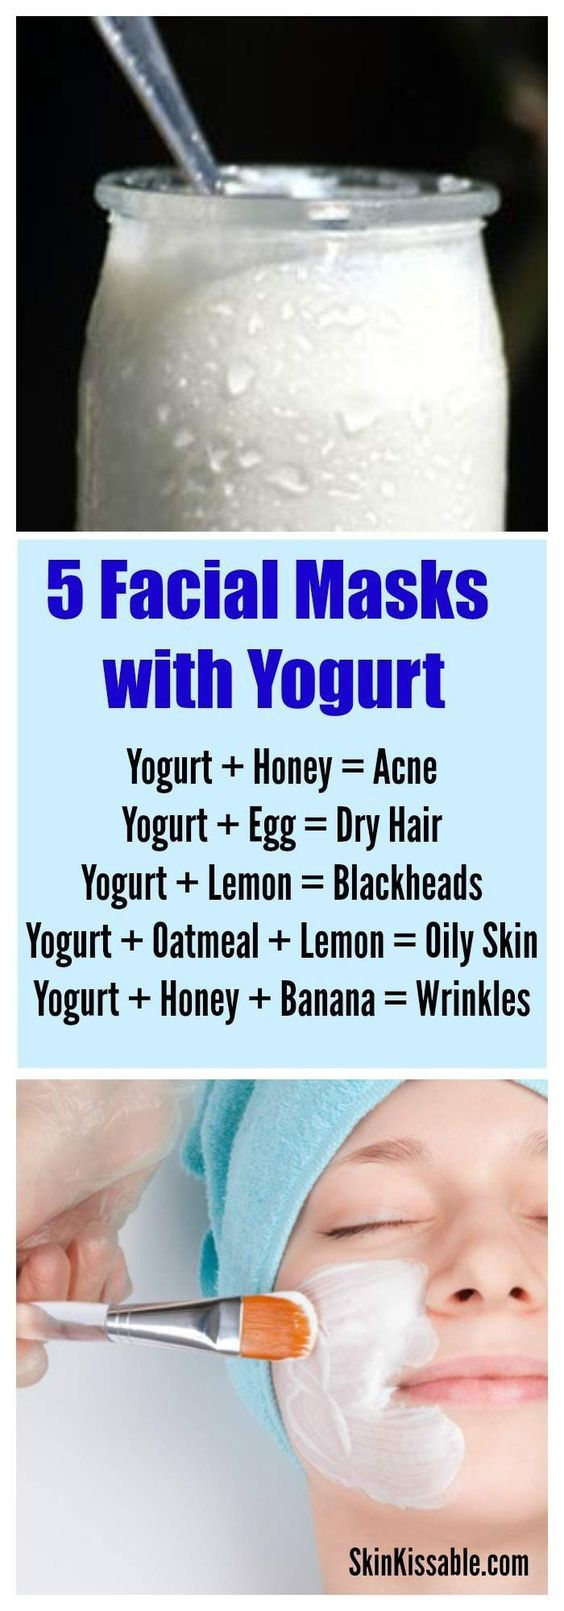 10 Benefits of Yogurt for Skin #healthyskin